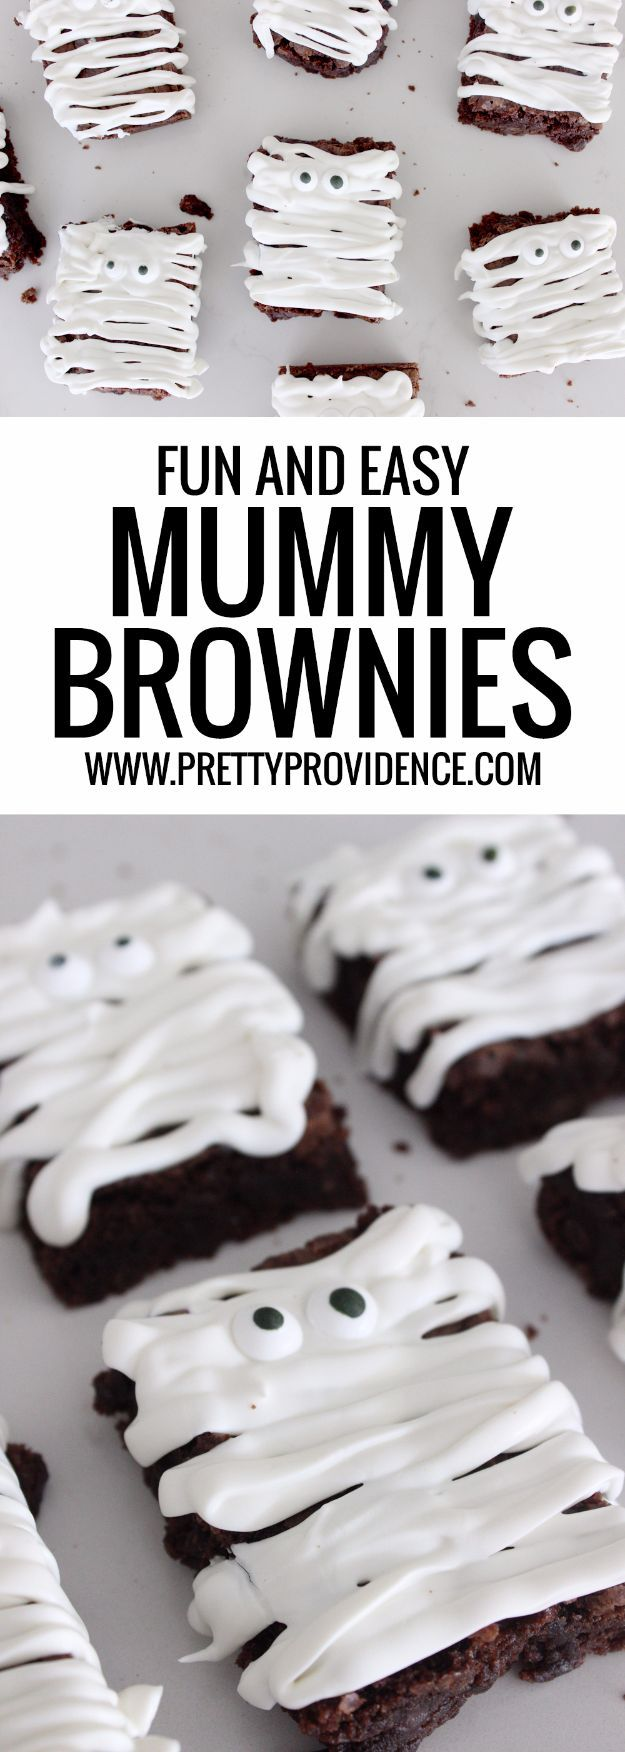 Best Halloween Party Snacks - Easy Mummy Brownies - Healthy Ideas for Kids for School, Teens and Adults - Easy and Quick Recipes and Idea for Dips, Chips, Spooky Cookies and Treats - Appetizers and Finger Foods Made With Vegetables, No Candy, Cheap Food, Scary DIY Party Foods With Step by Step Tutorials http://diyjoy.com/halloween-party-snacks